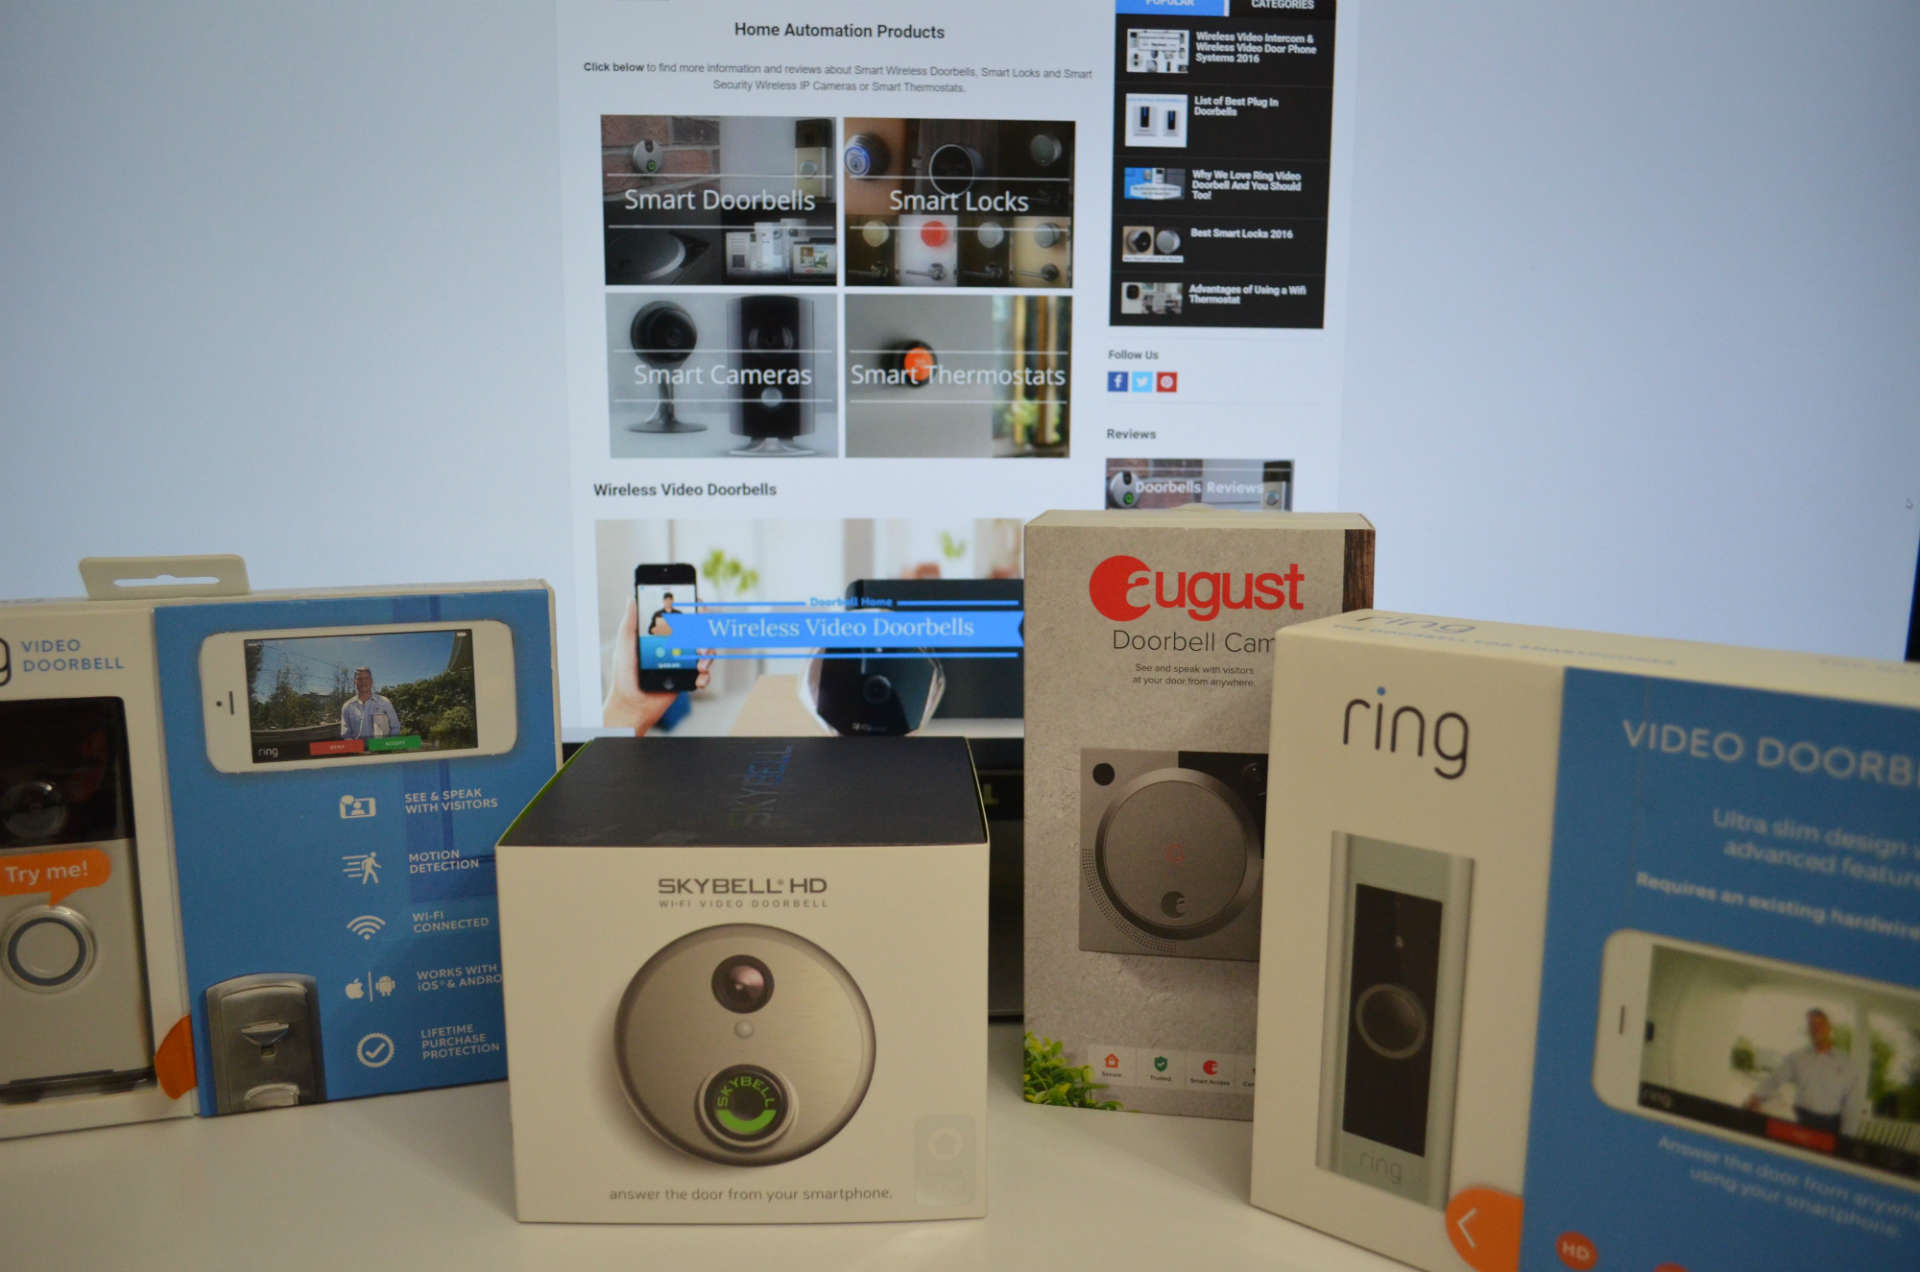 Does Ring Support Ifttt